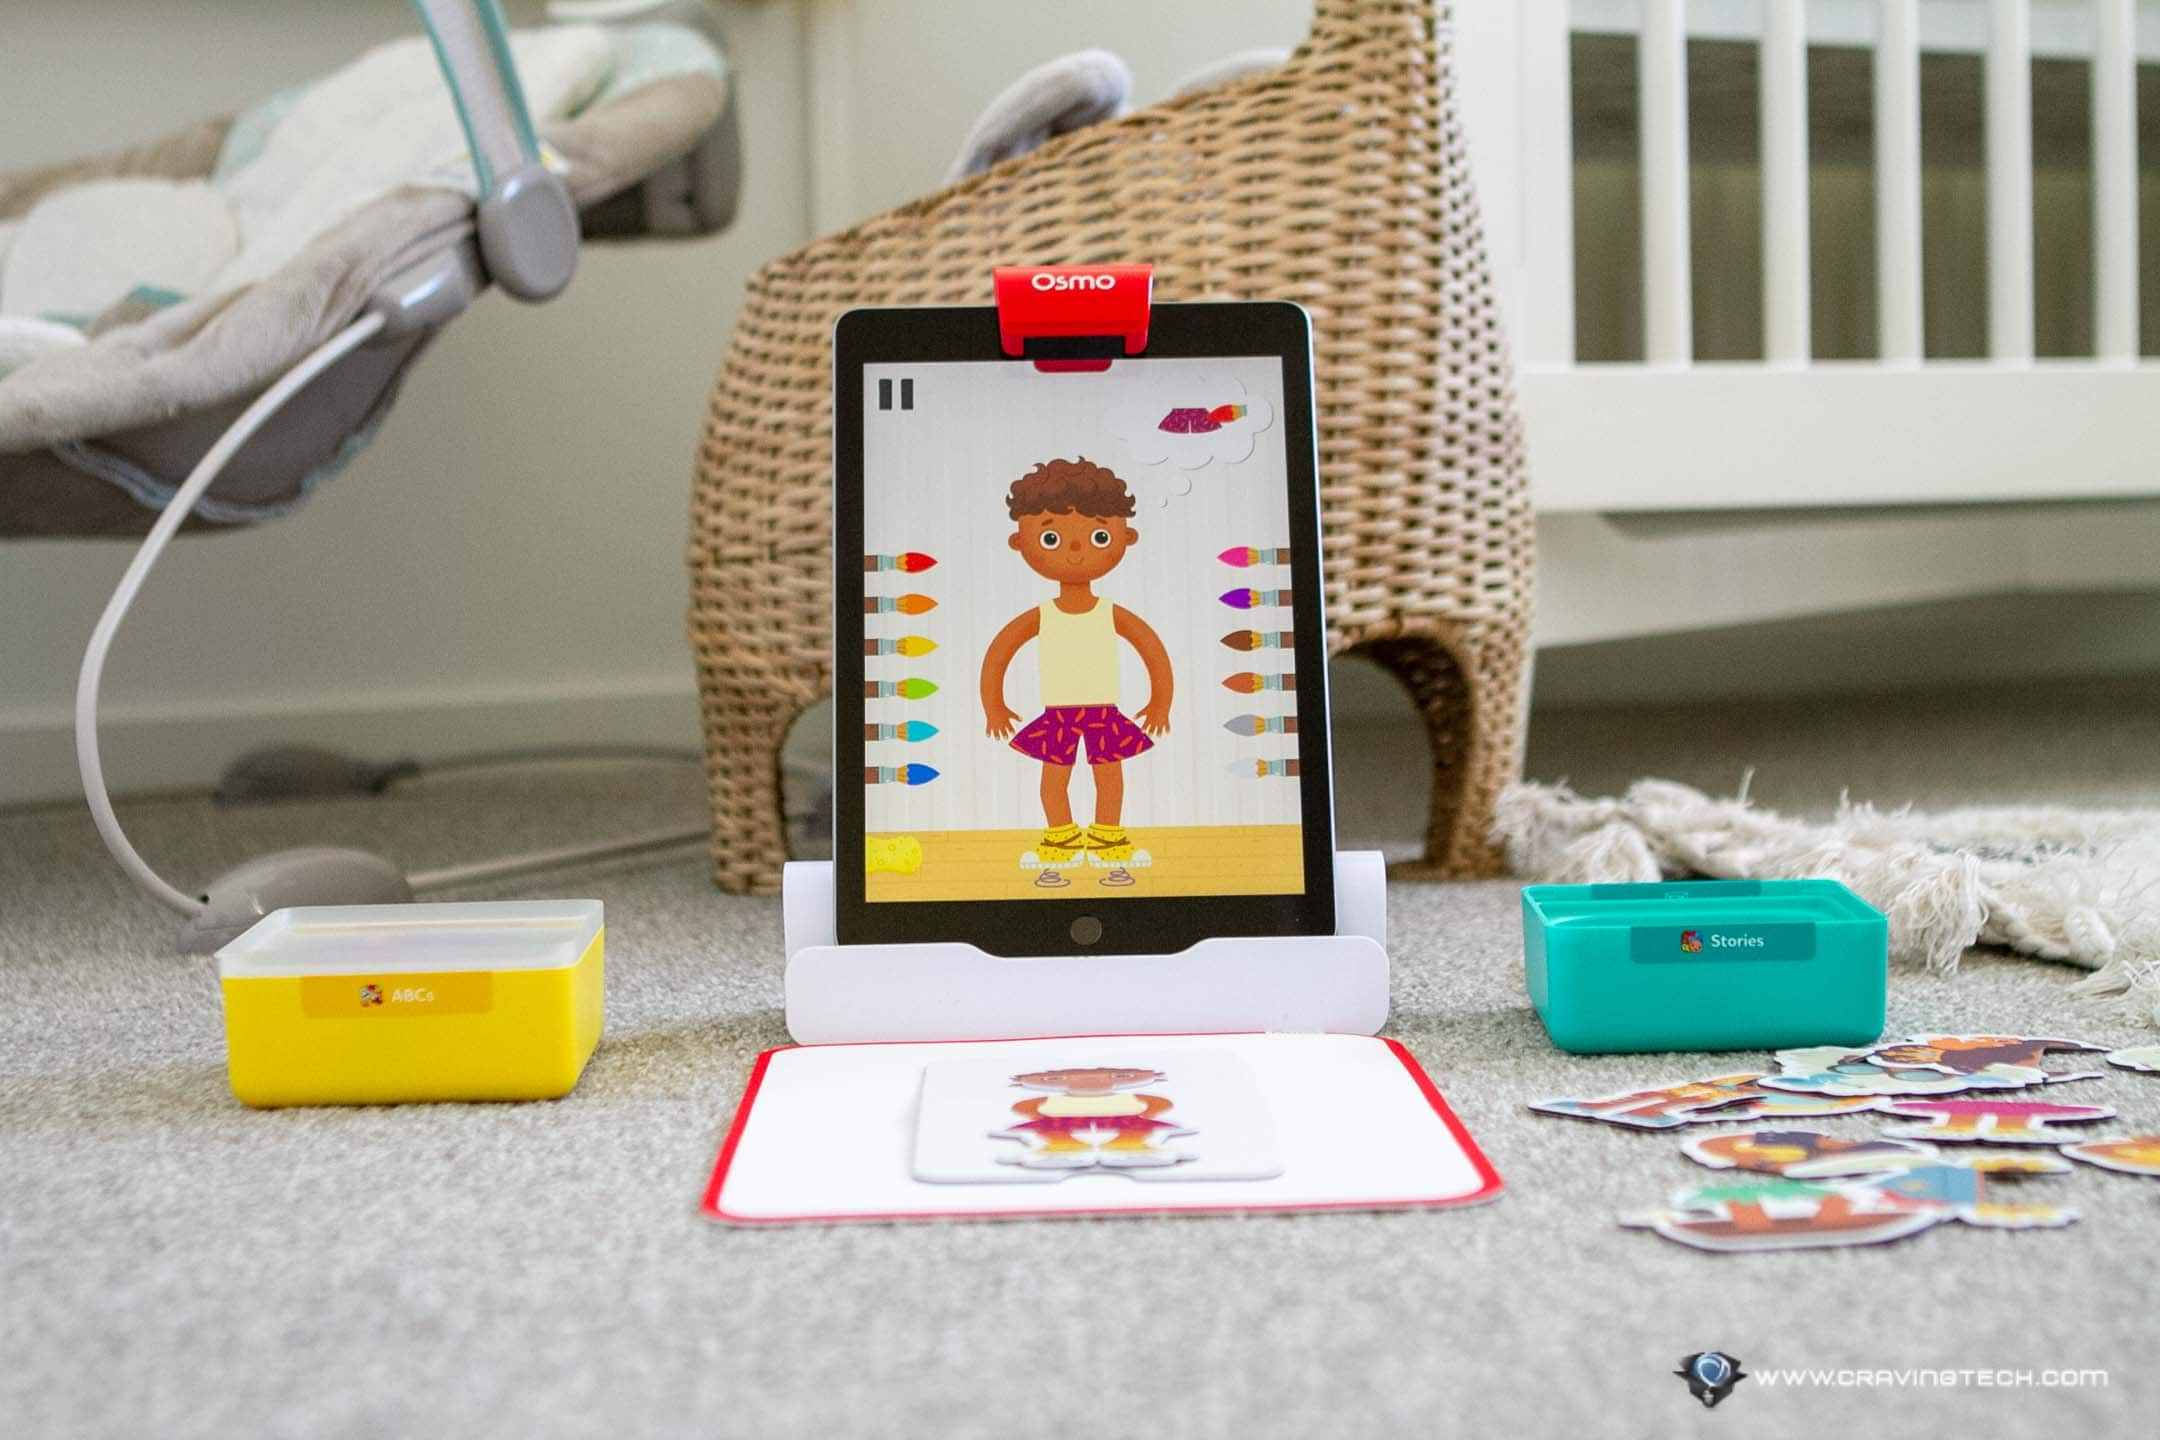 A fun, smart, and creative digital learning on the iPad – Osmo Little Genius Starter Kit Review